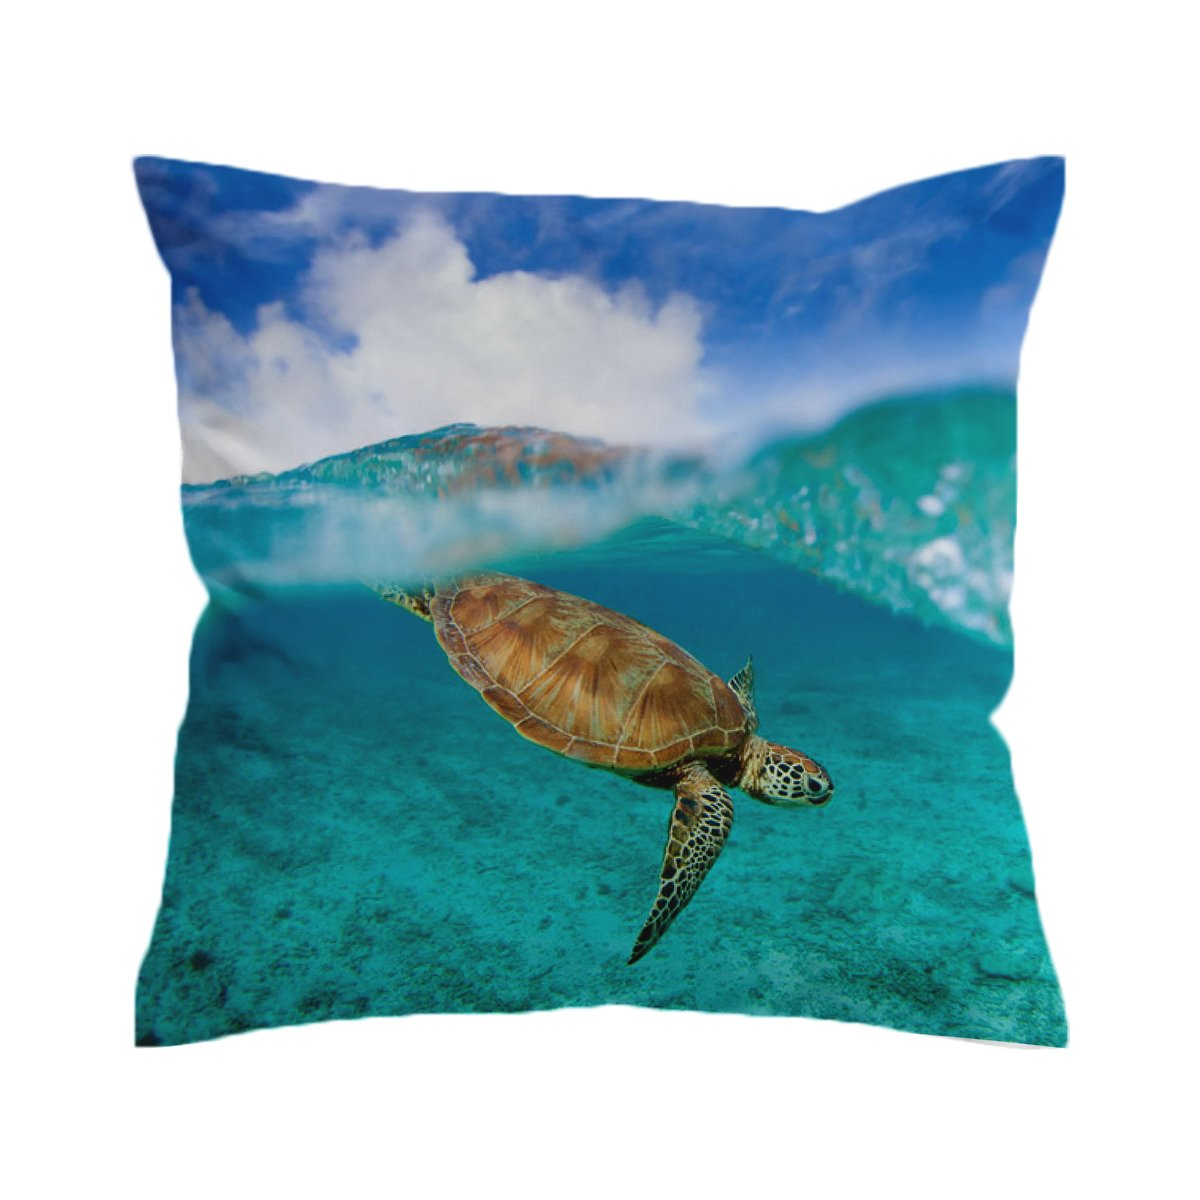 Surf Turtle Pillow Cover-Coastal Passion